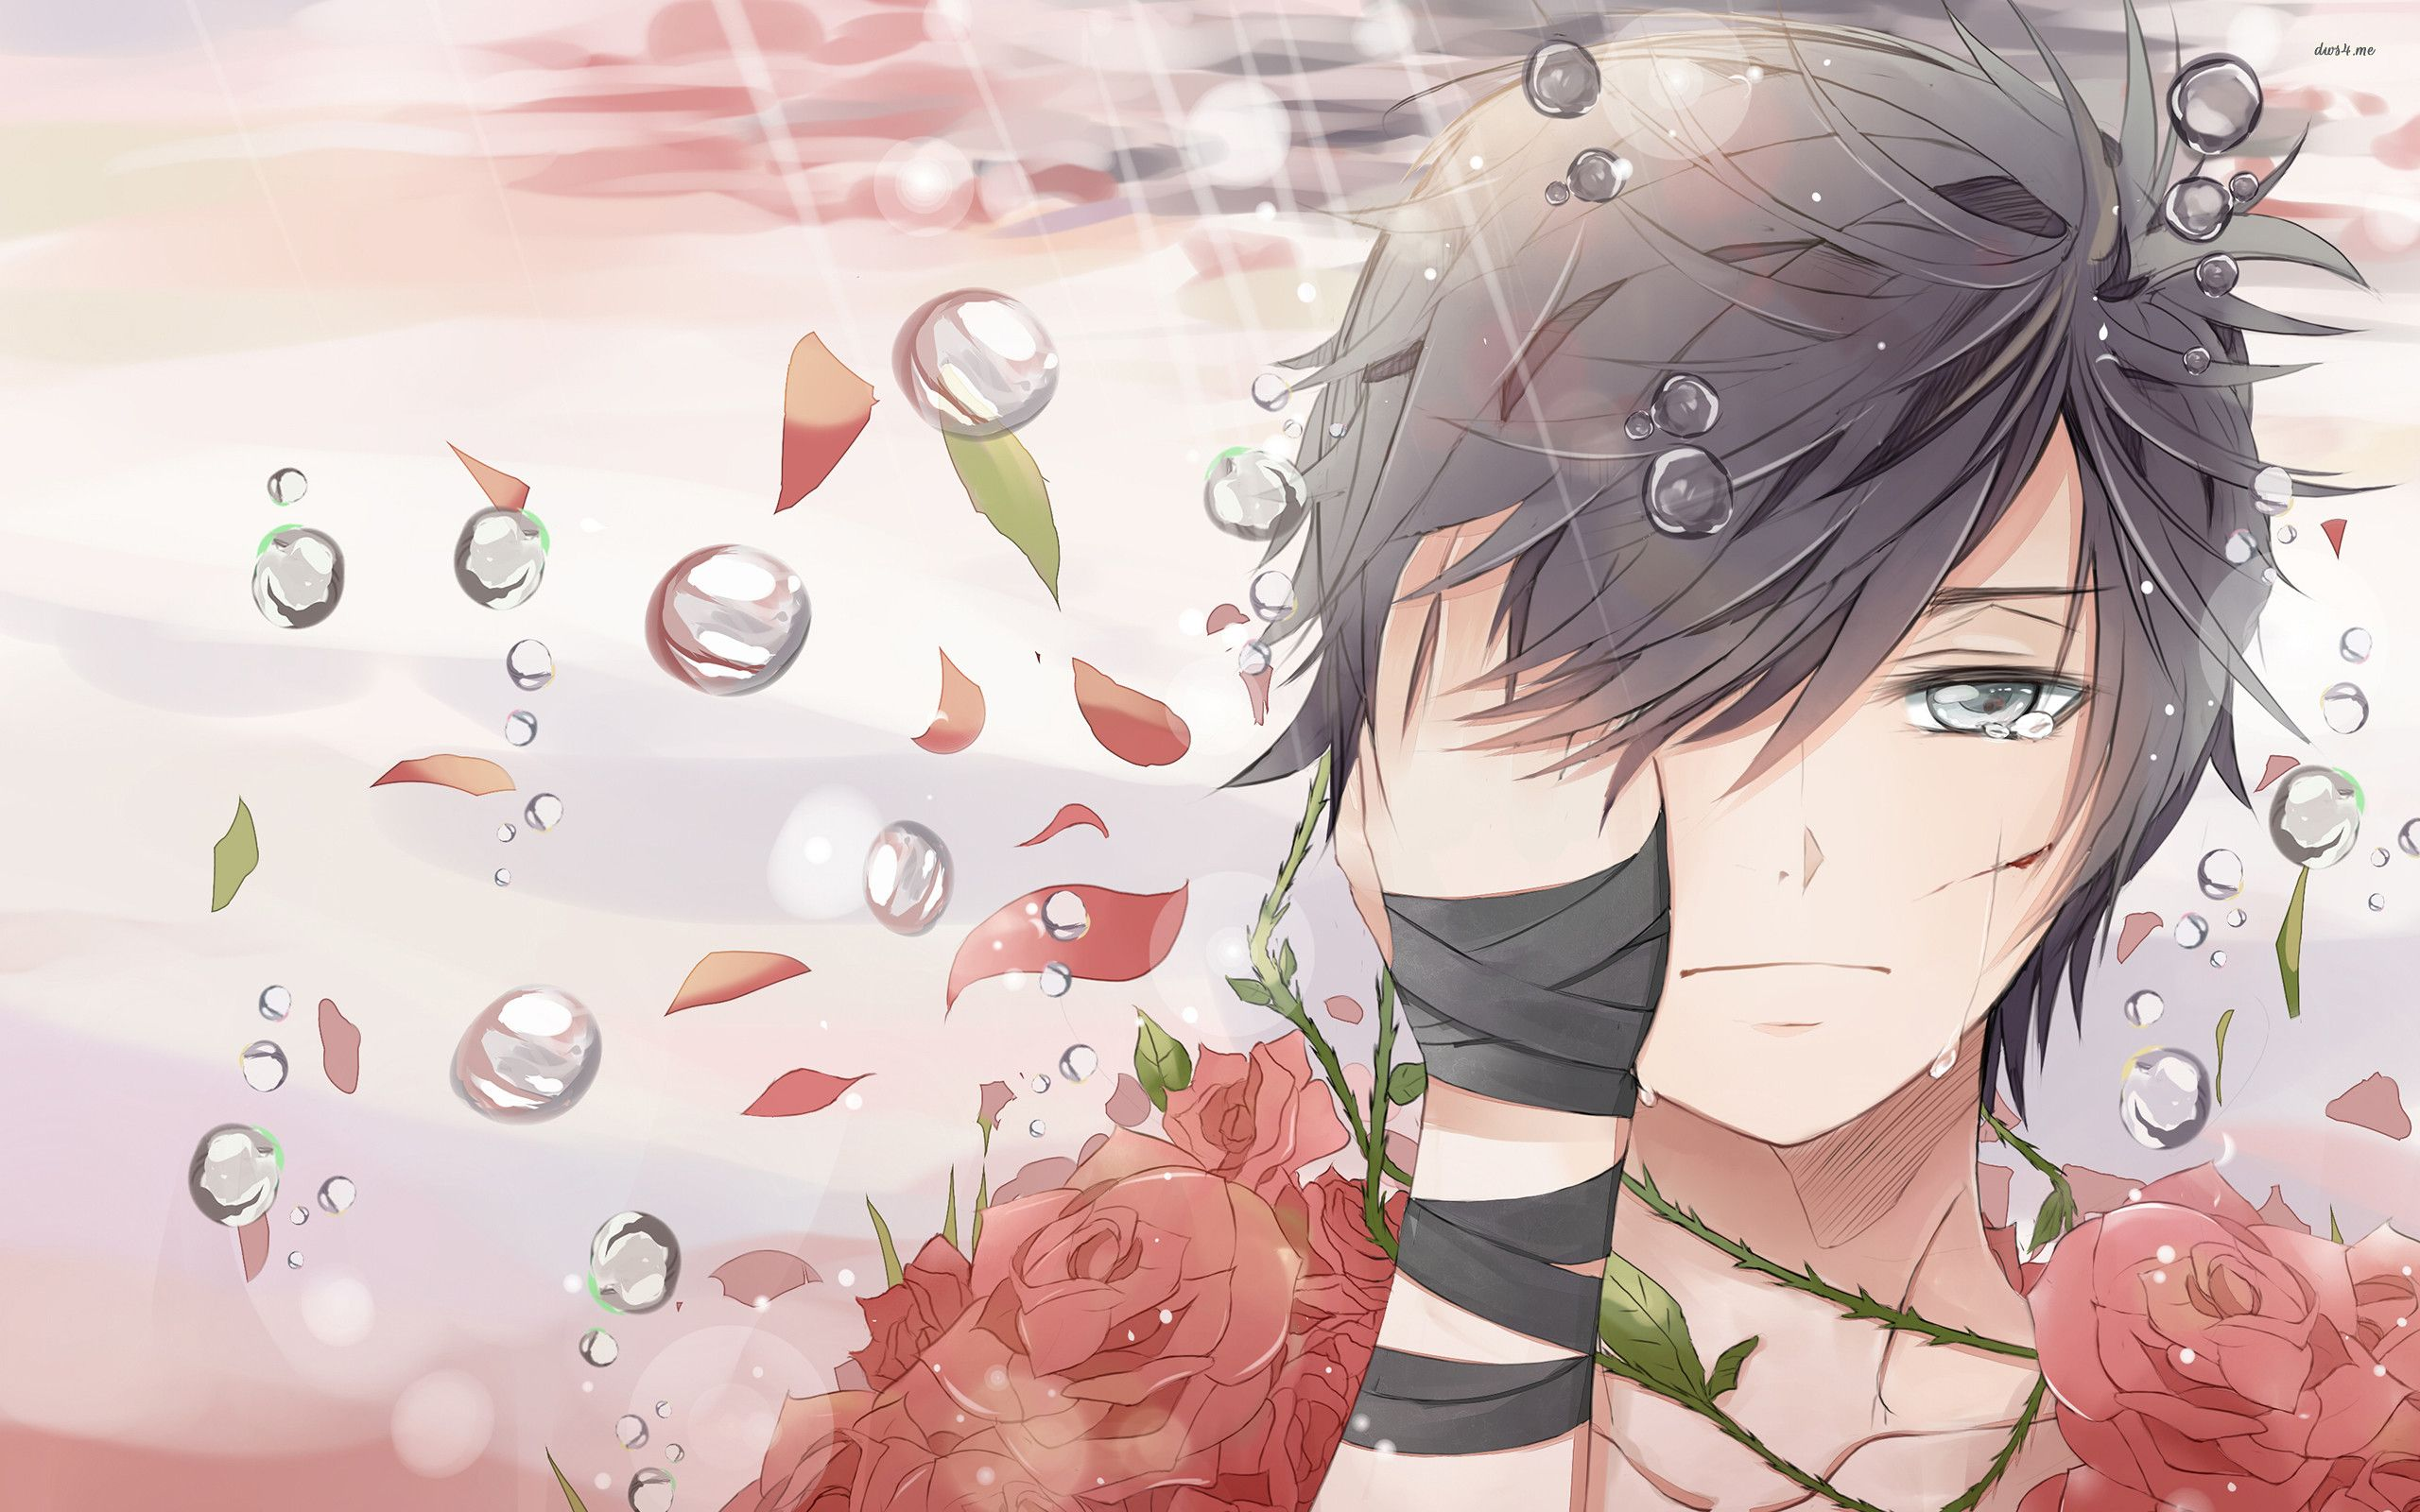 Aesthetic Anime Boy Wallpapers Top Free Aesthetic Anime Boy Backgrounds Wallpaperaccess